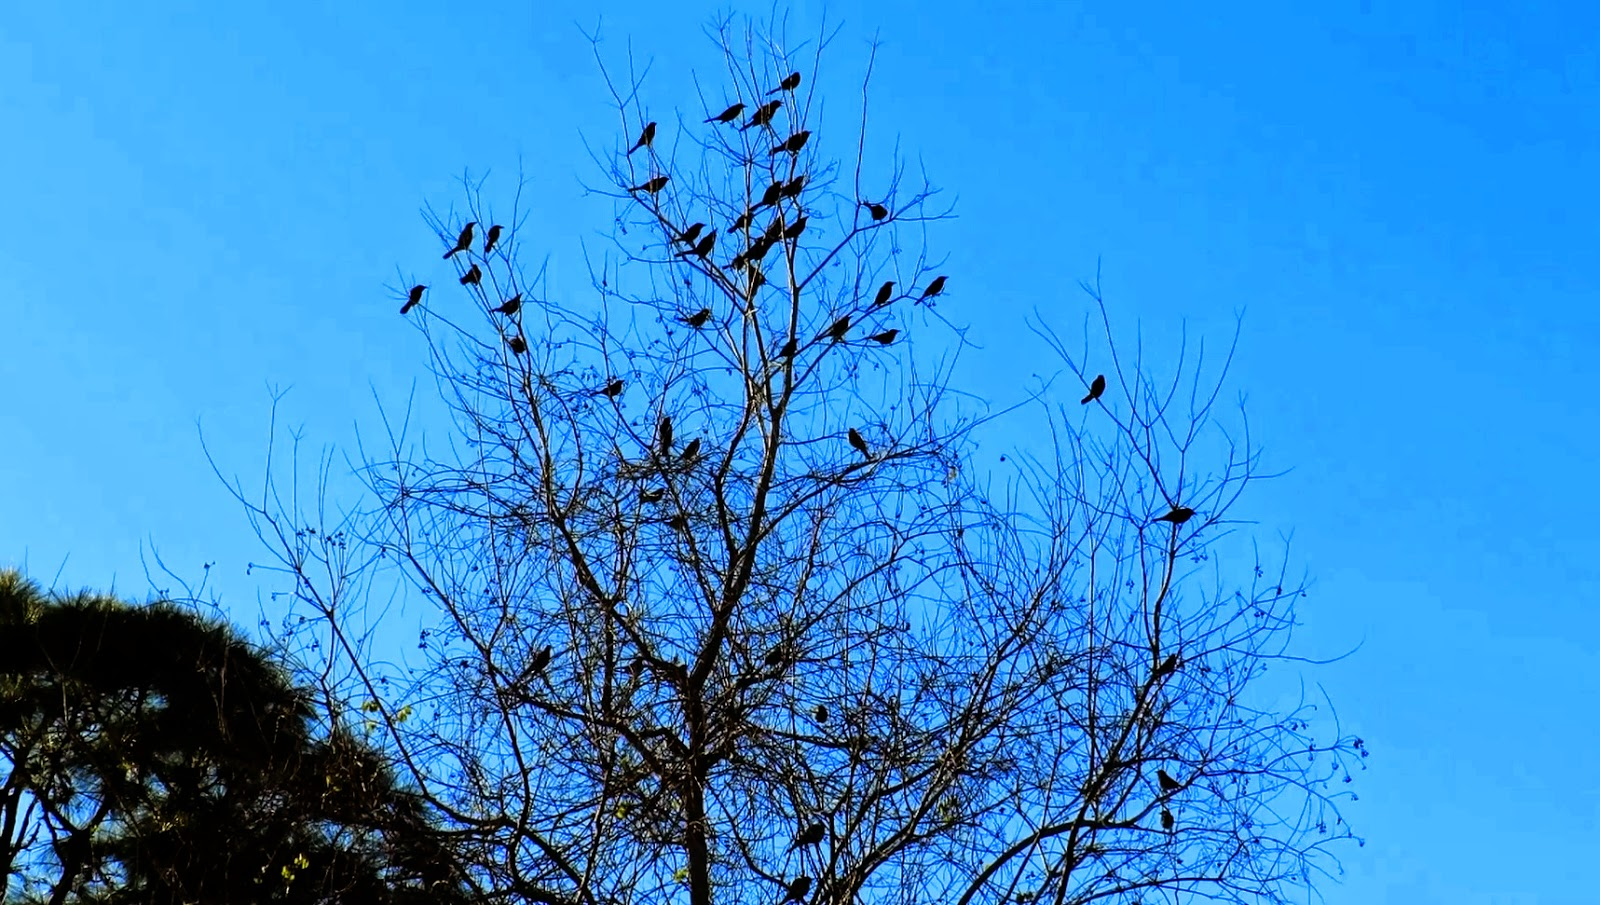 Flock Of Grackles Takes Off